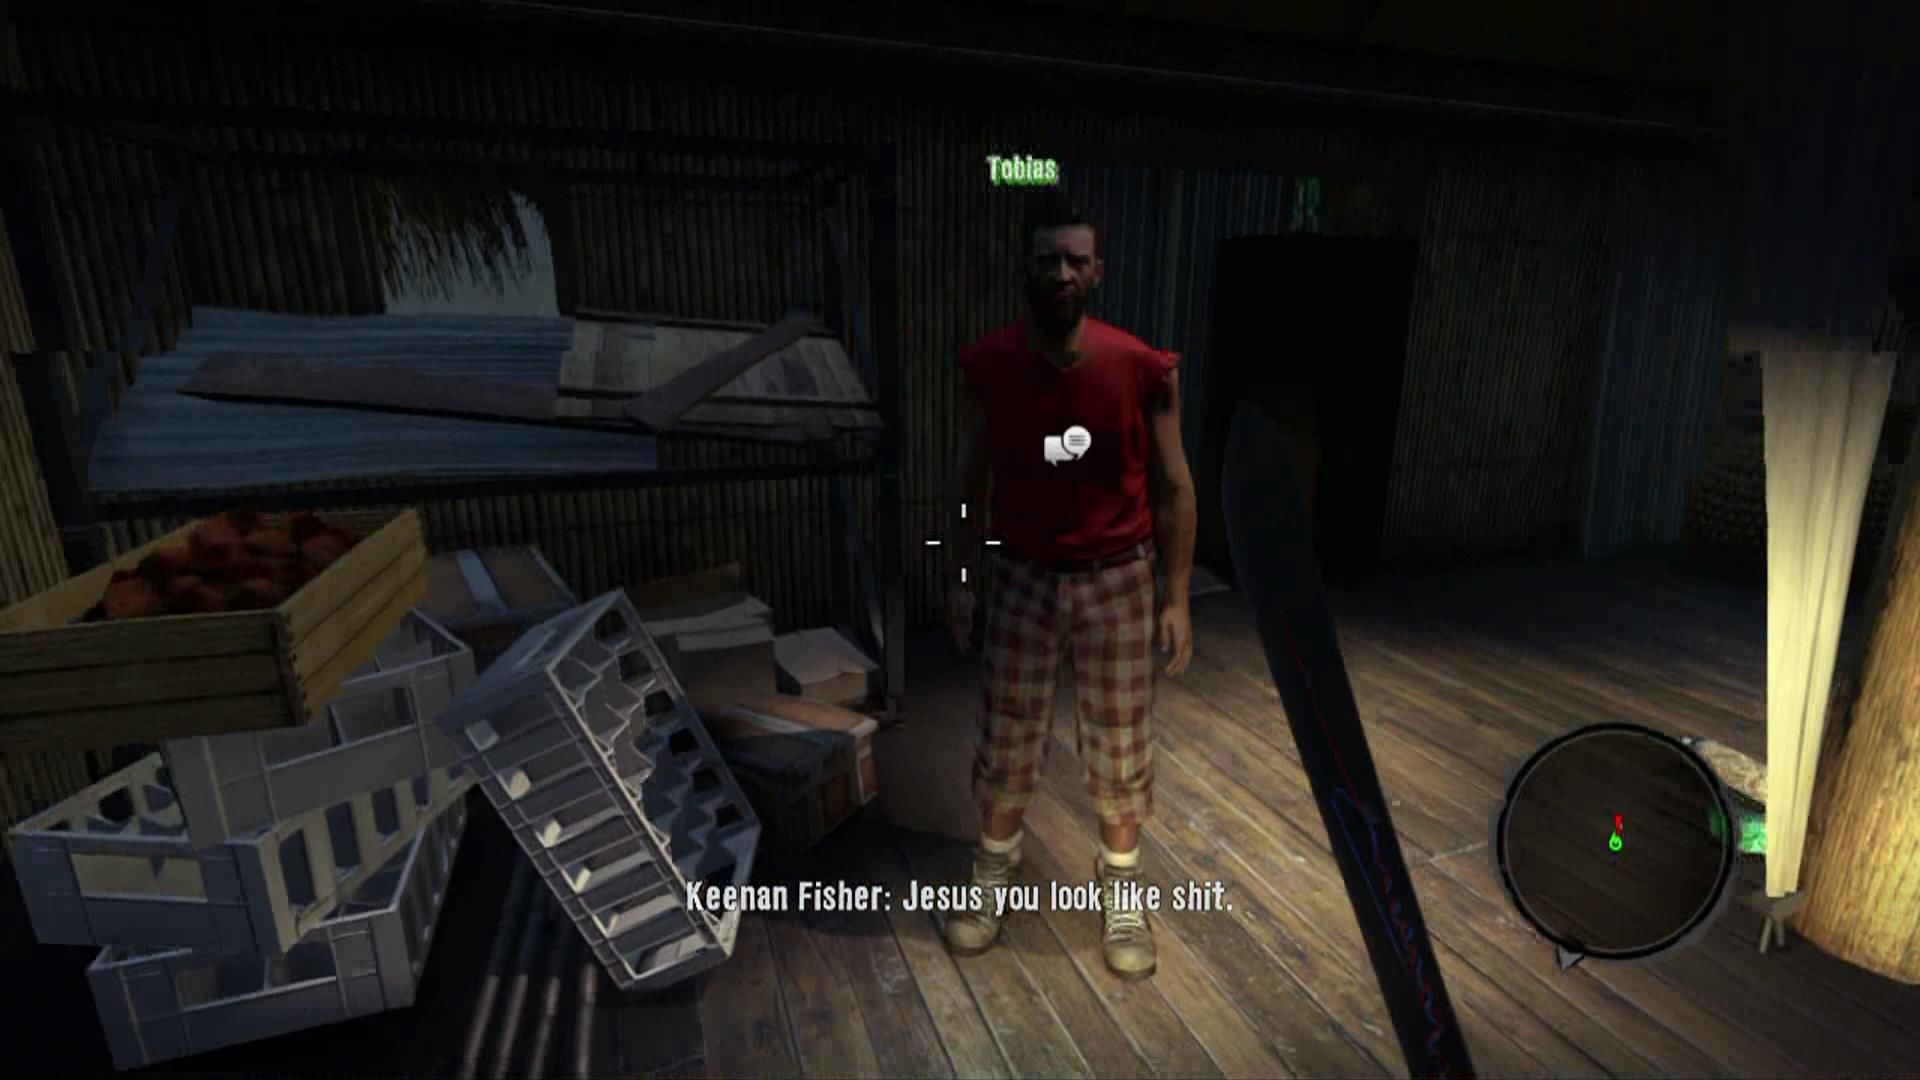 Dead Island Xbox 360 Survivors will give you missions. You will either get money or items as a reward.